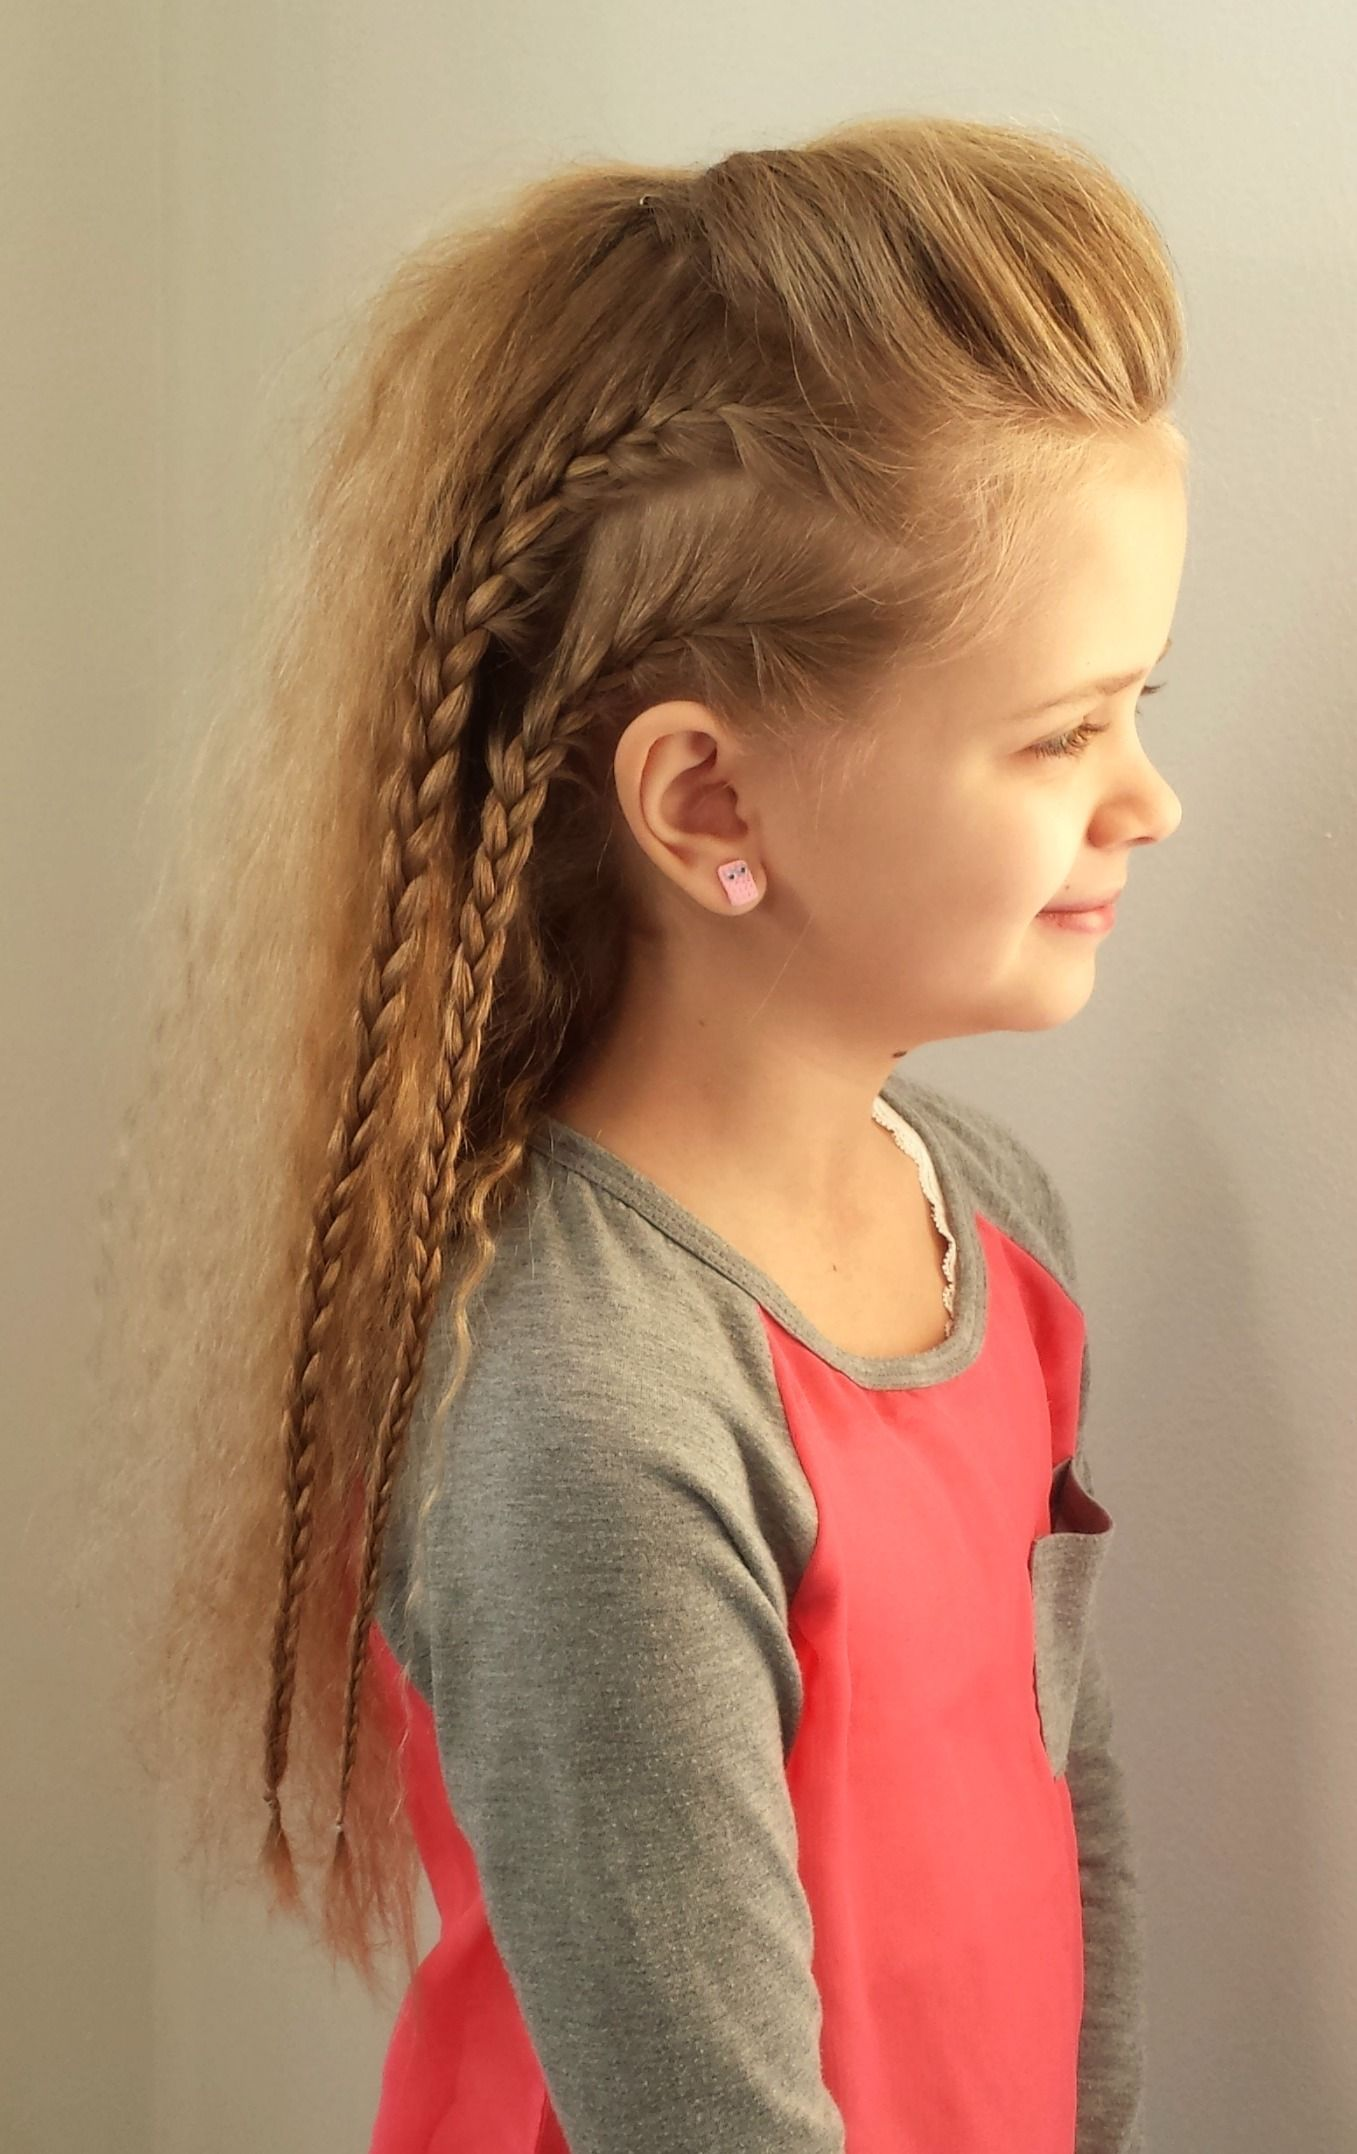 Viking Hairstyle This style is inspired by Lagertha There is a